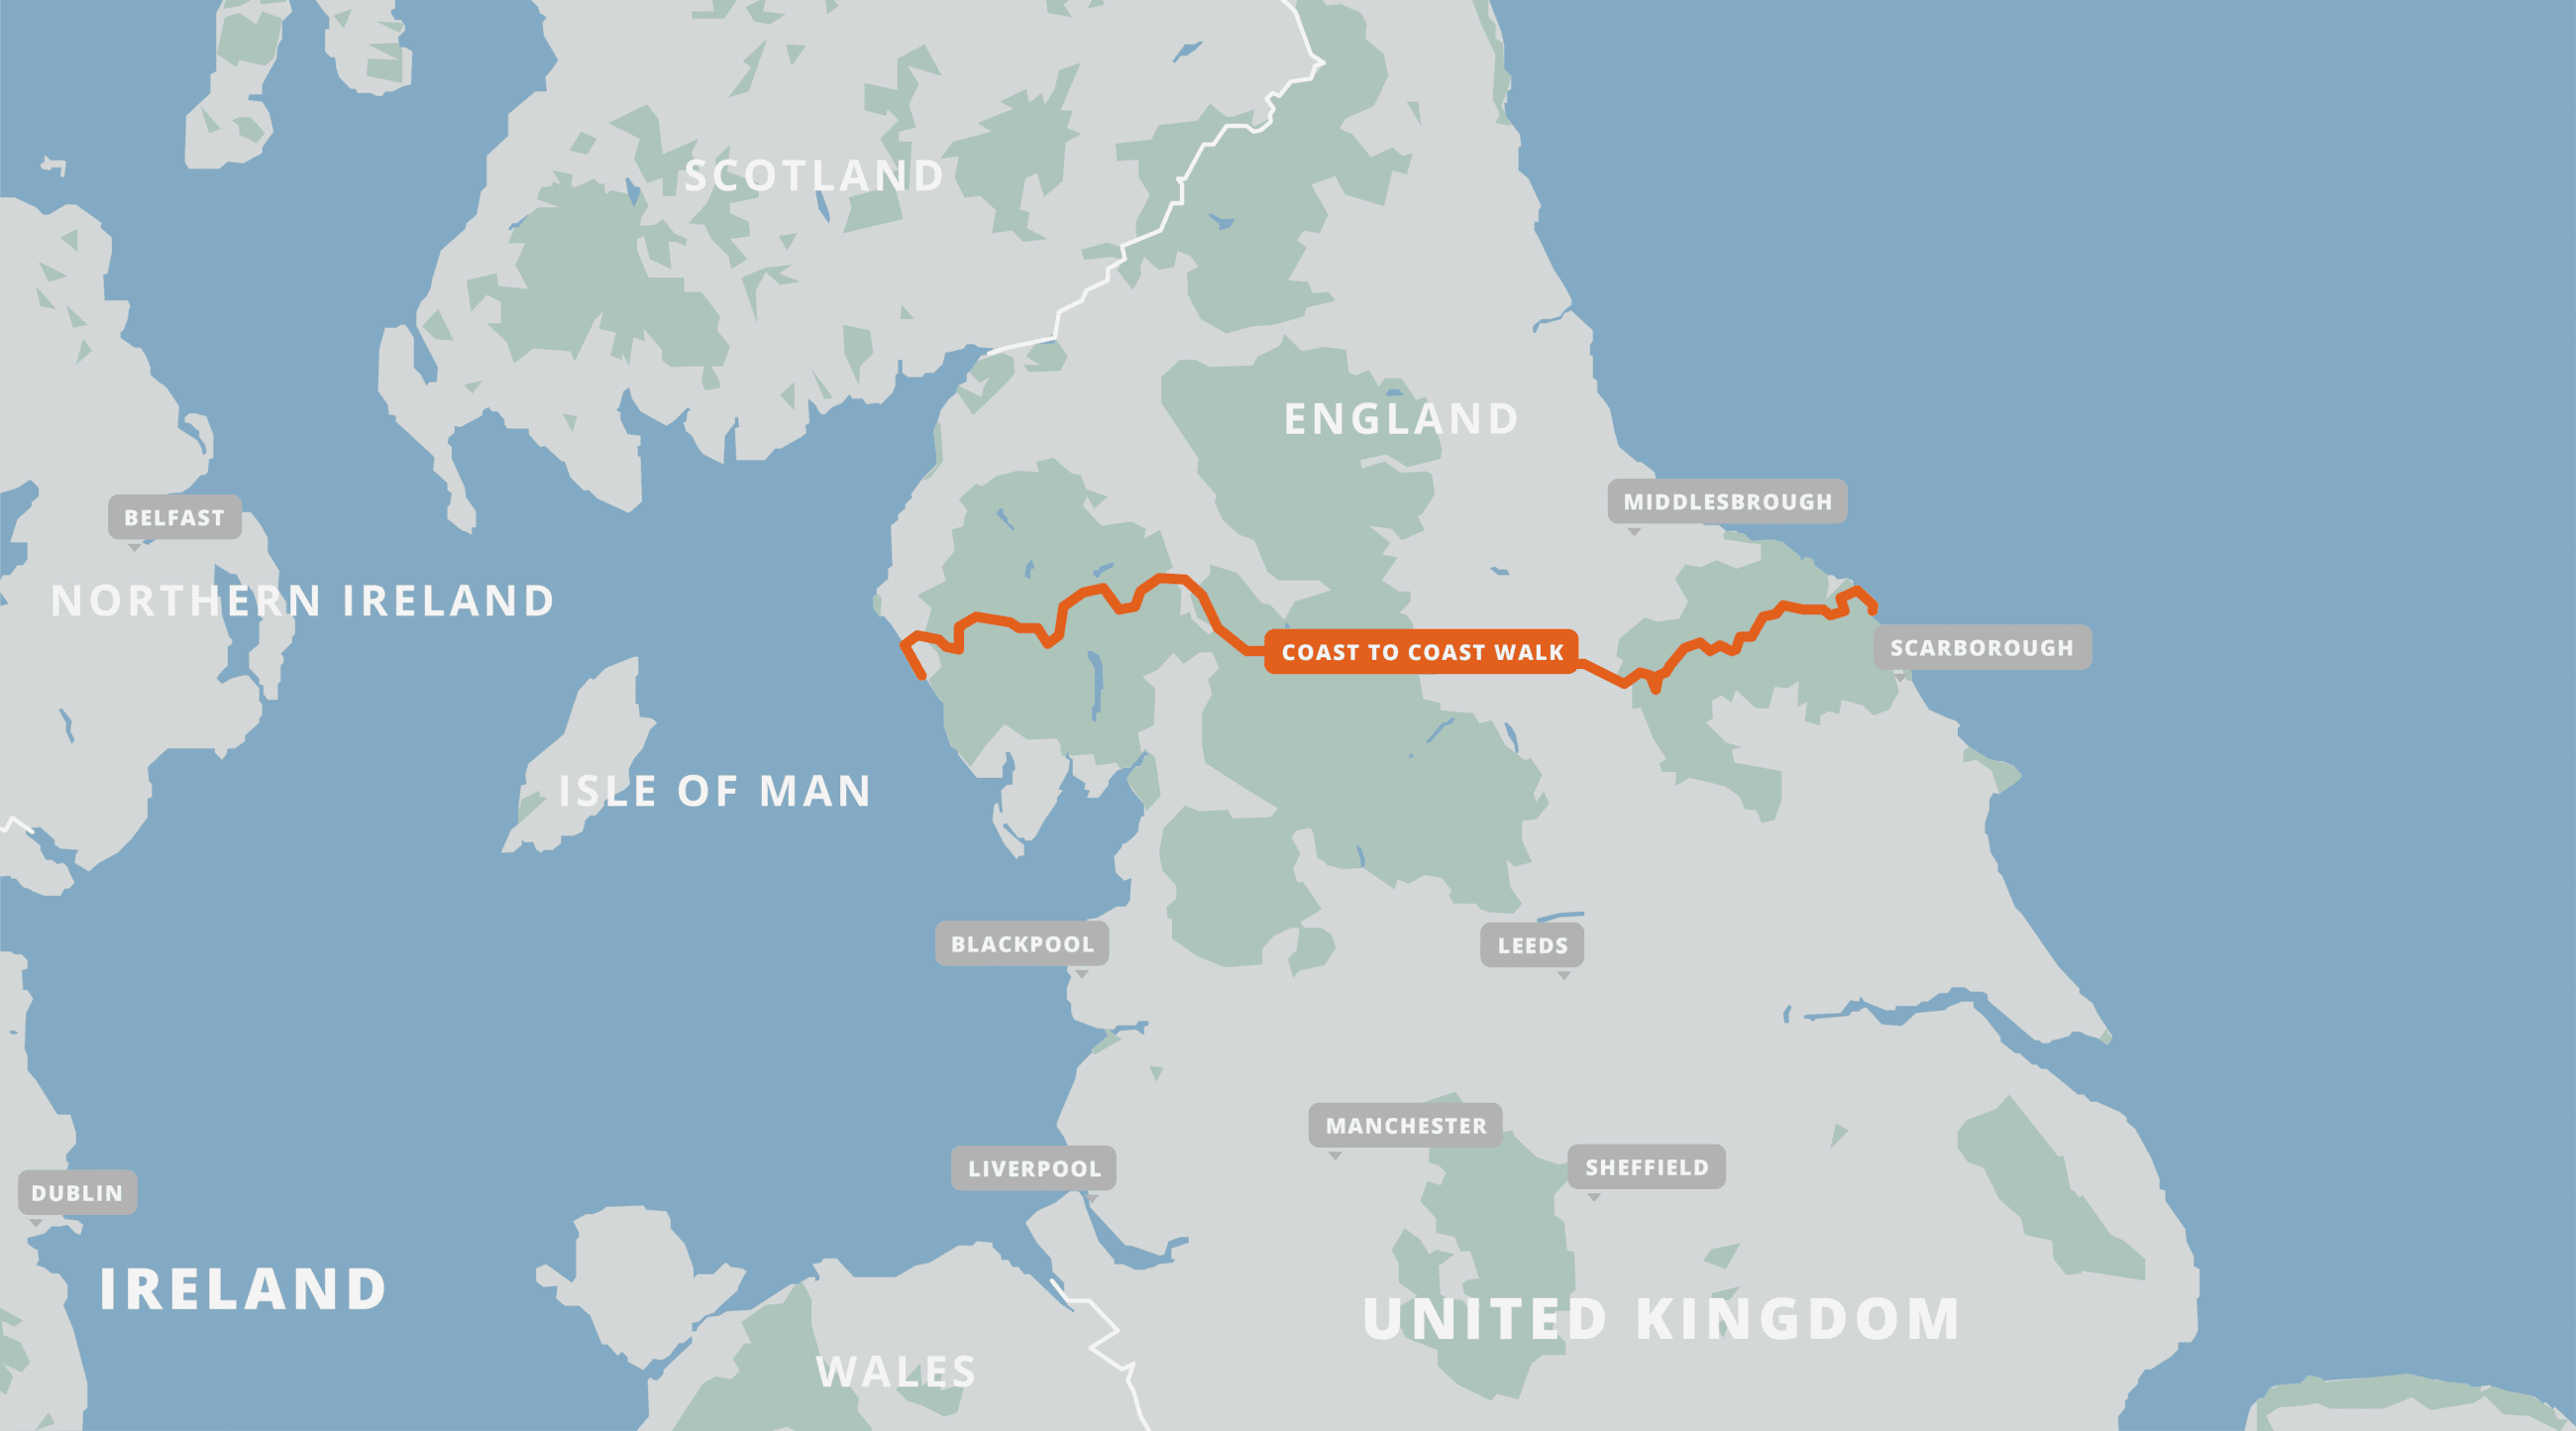 A map of the Coast to Coast Walk.